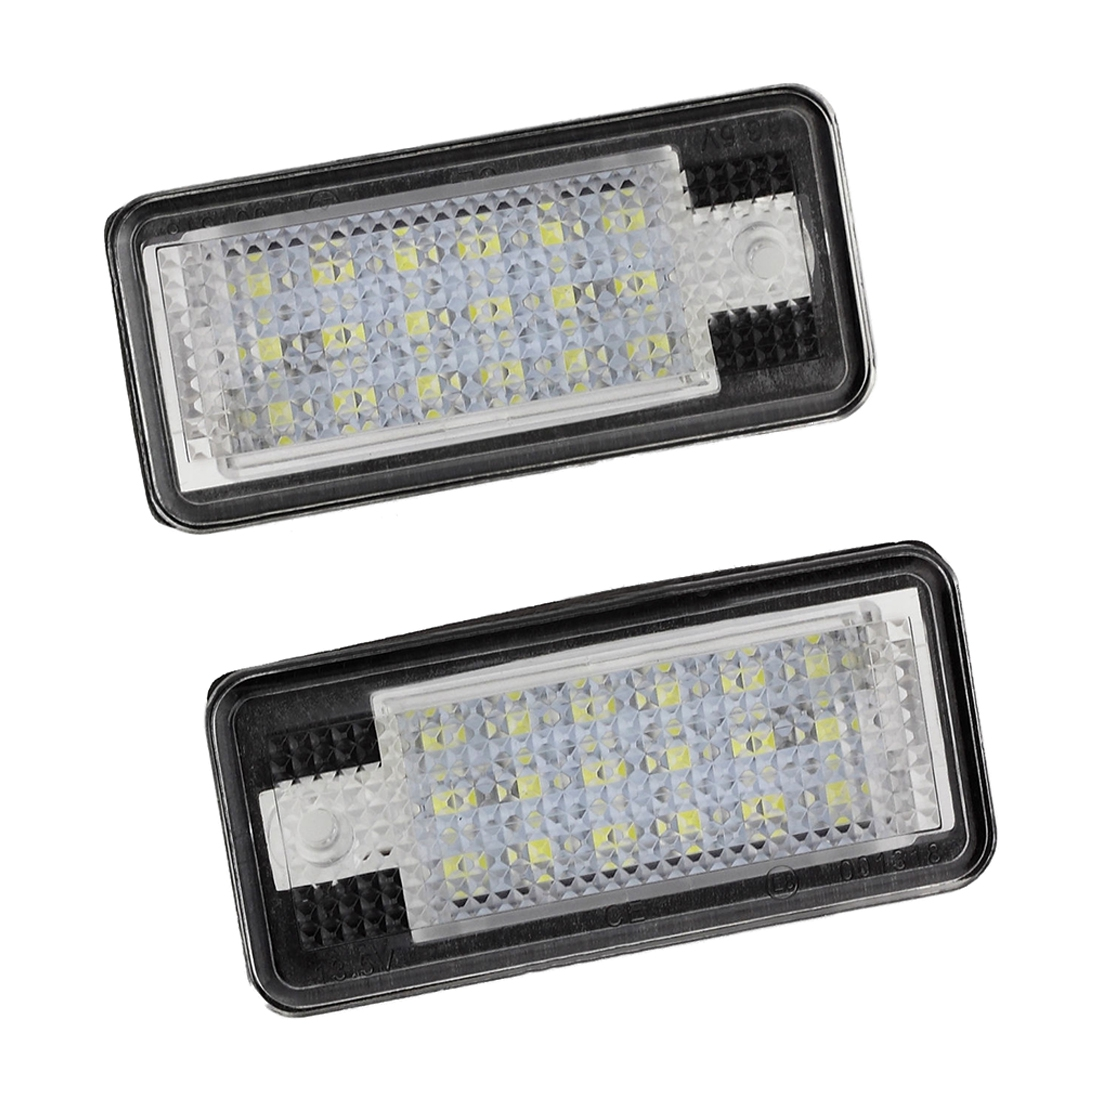 AUTO -2x 18 LED License Number Plate Light Lamp For <font><b>Audi</b></font> A3 S3 A4 S4 B6 A6 S6 <font><b>A8</b></font> S8 Q7 image